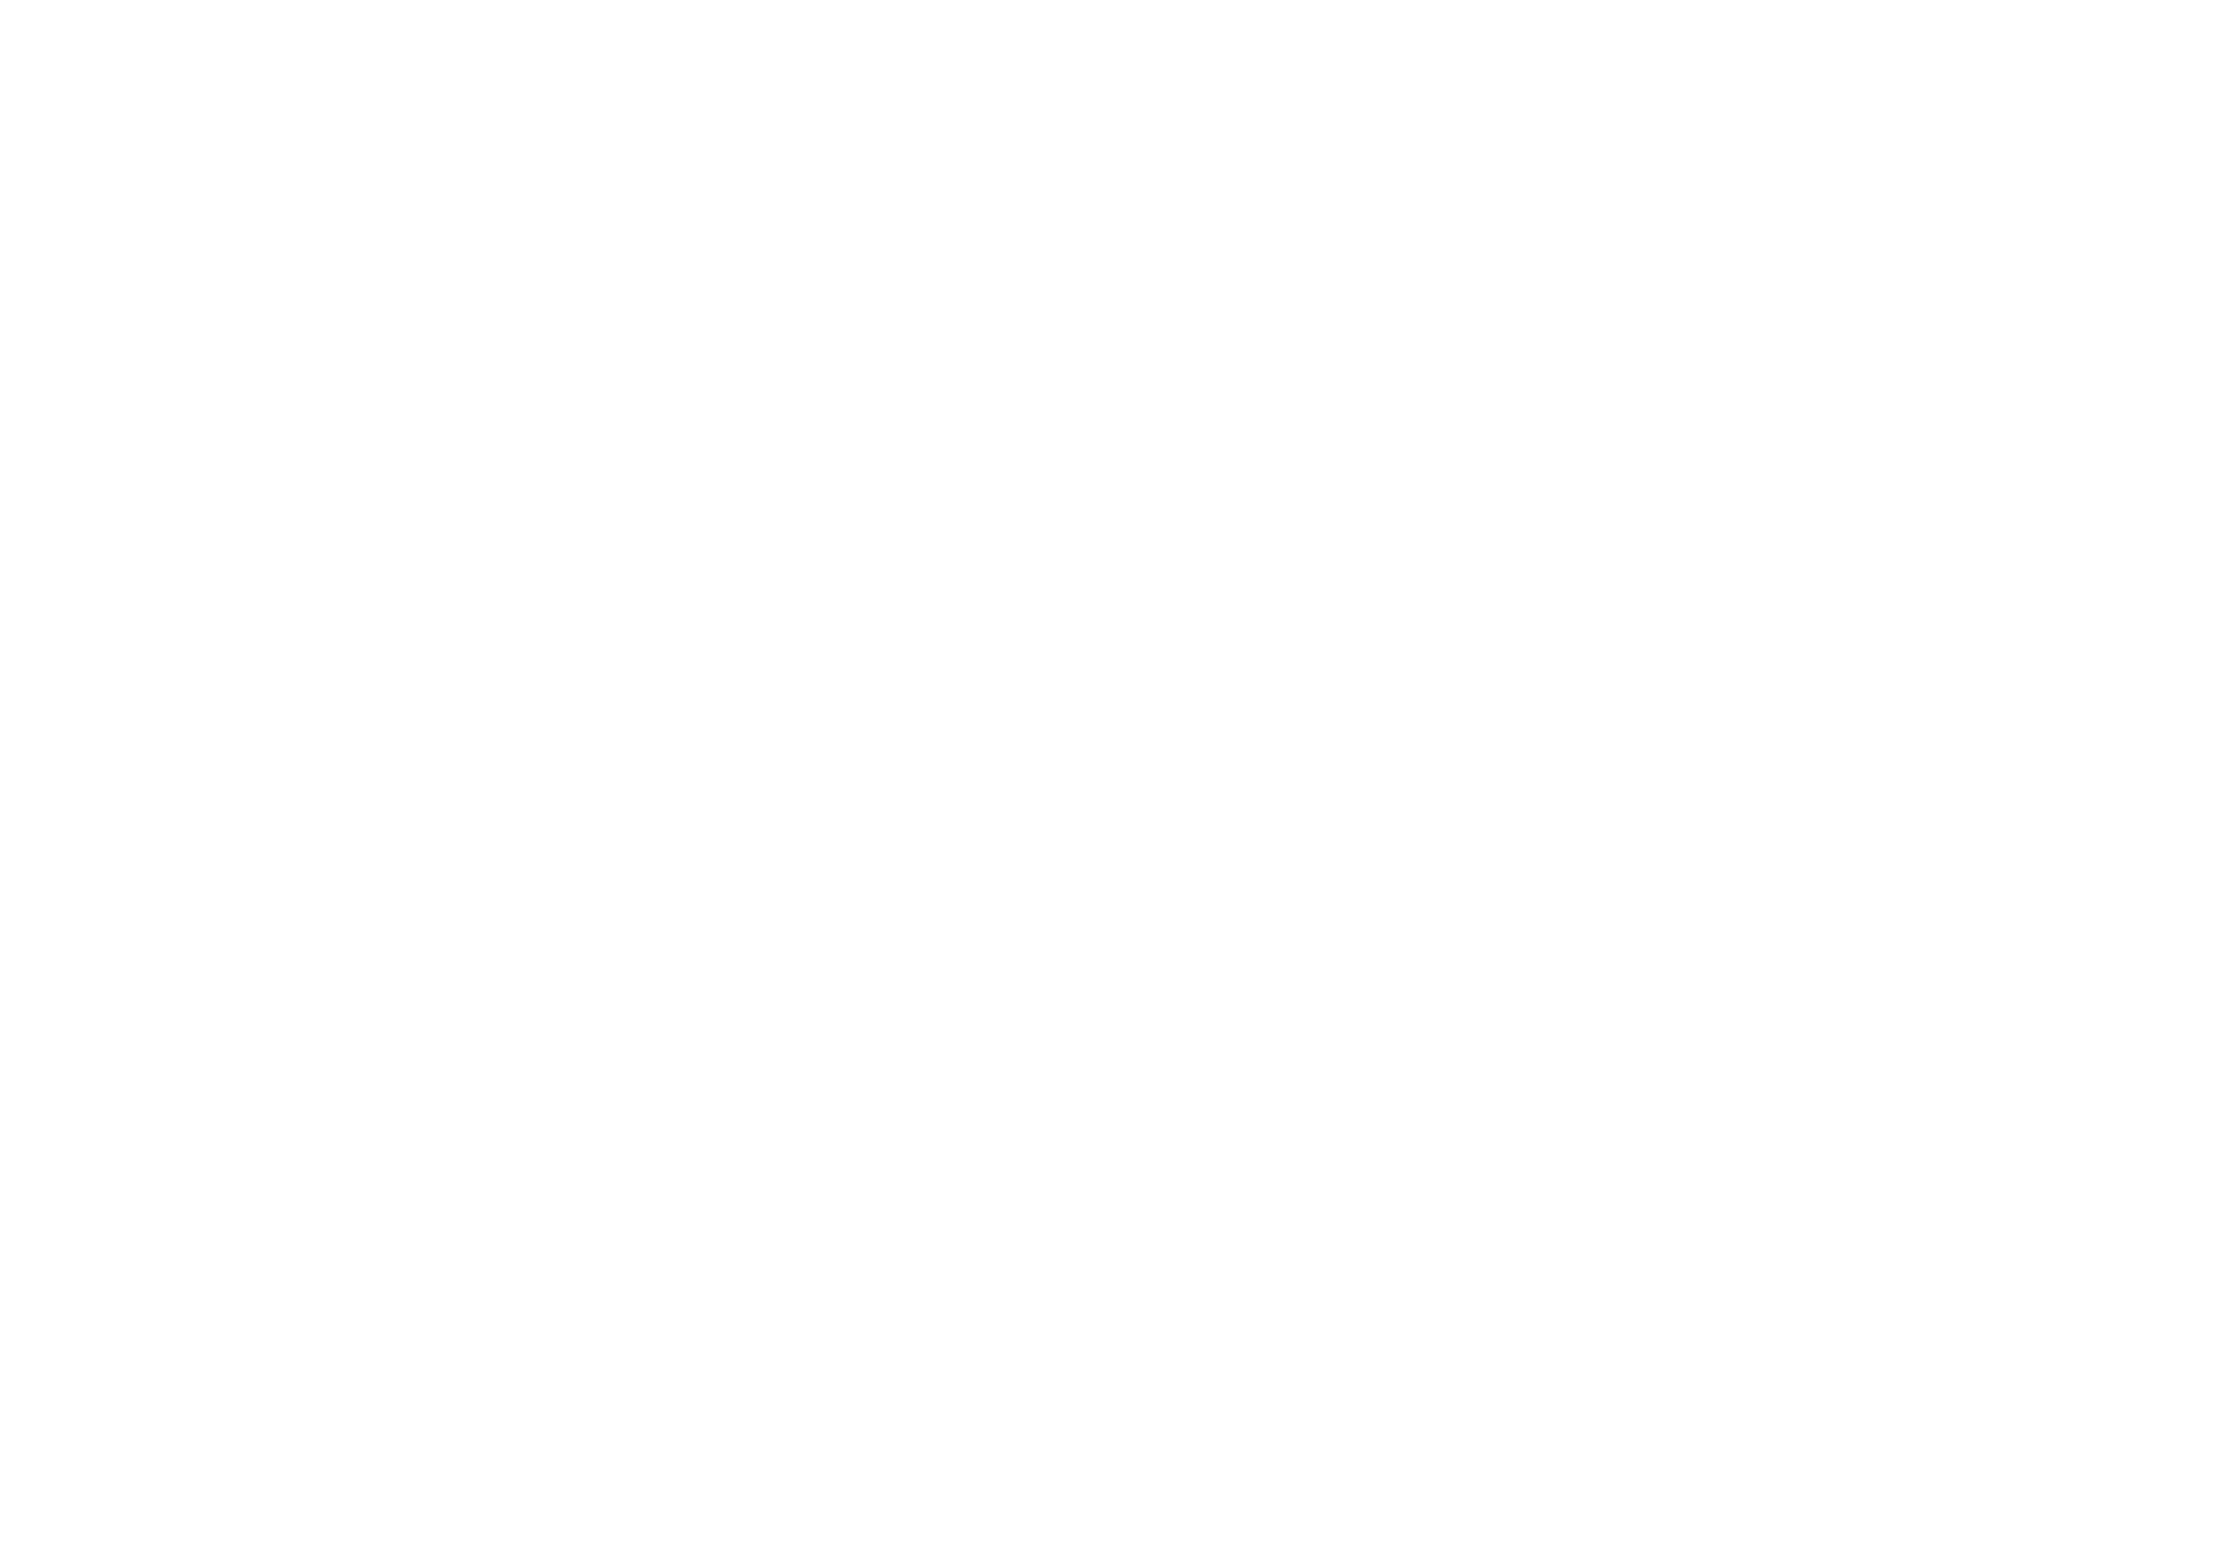 Security Management of SC | Security Guards, Security Officers | NC, GA